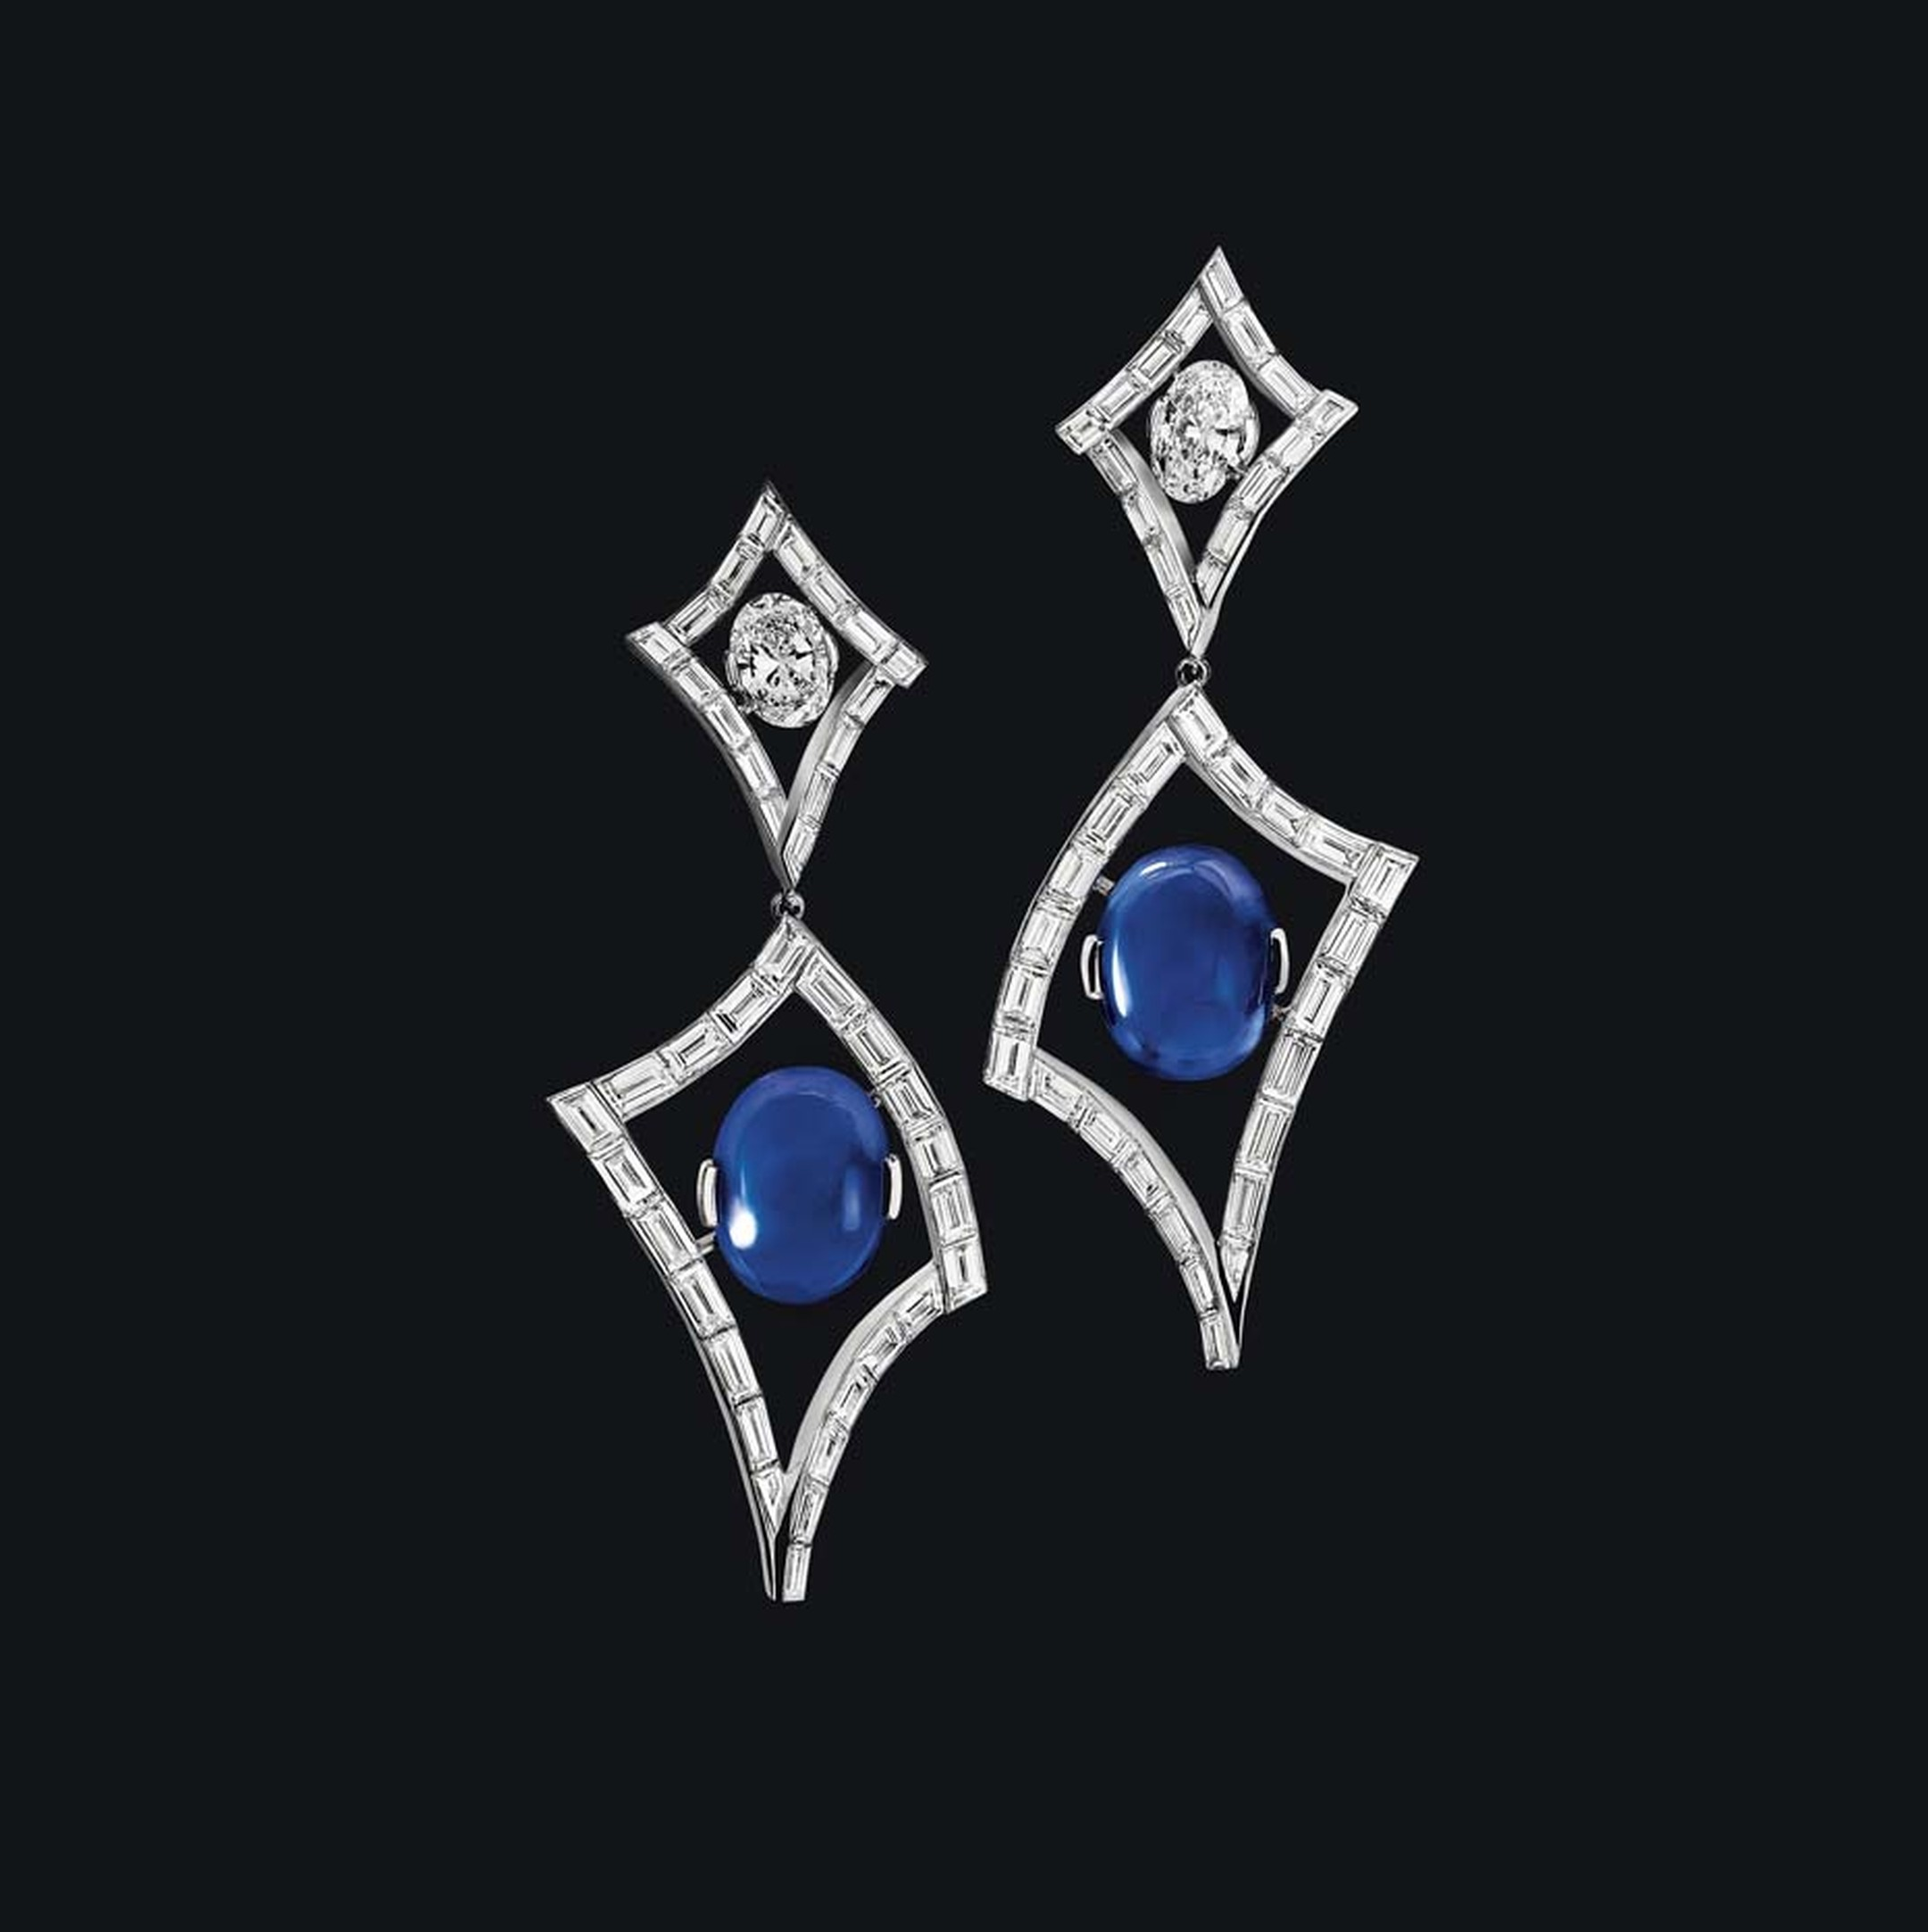 Alexandre Reza Air earrings, featuring two unheated oval-shaped cabochons Burmese sapphires.